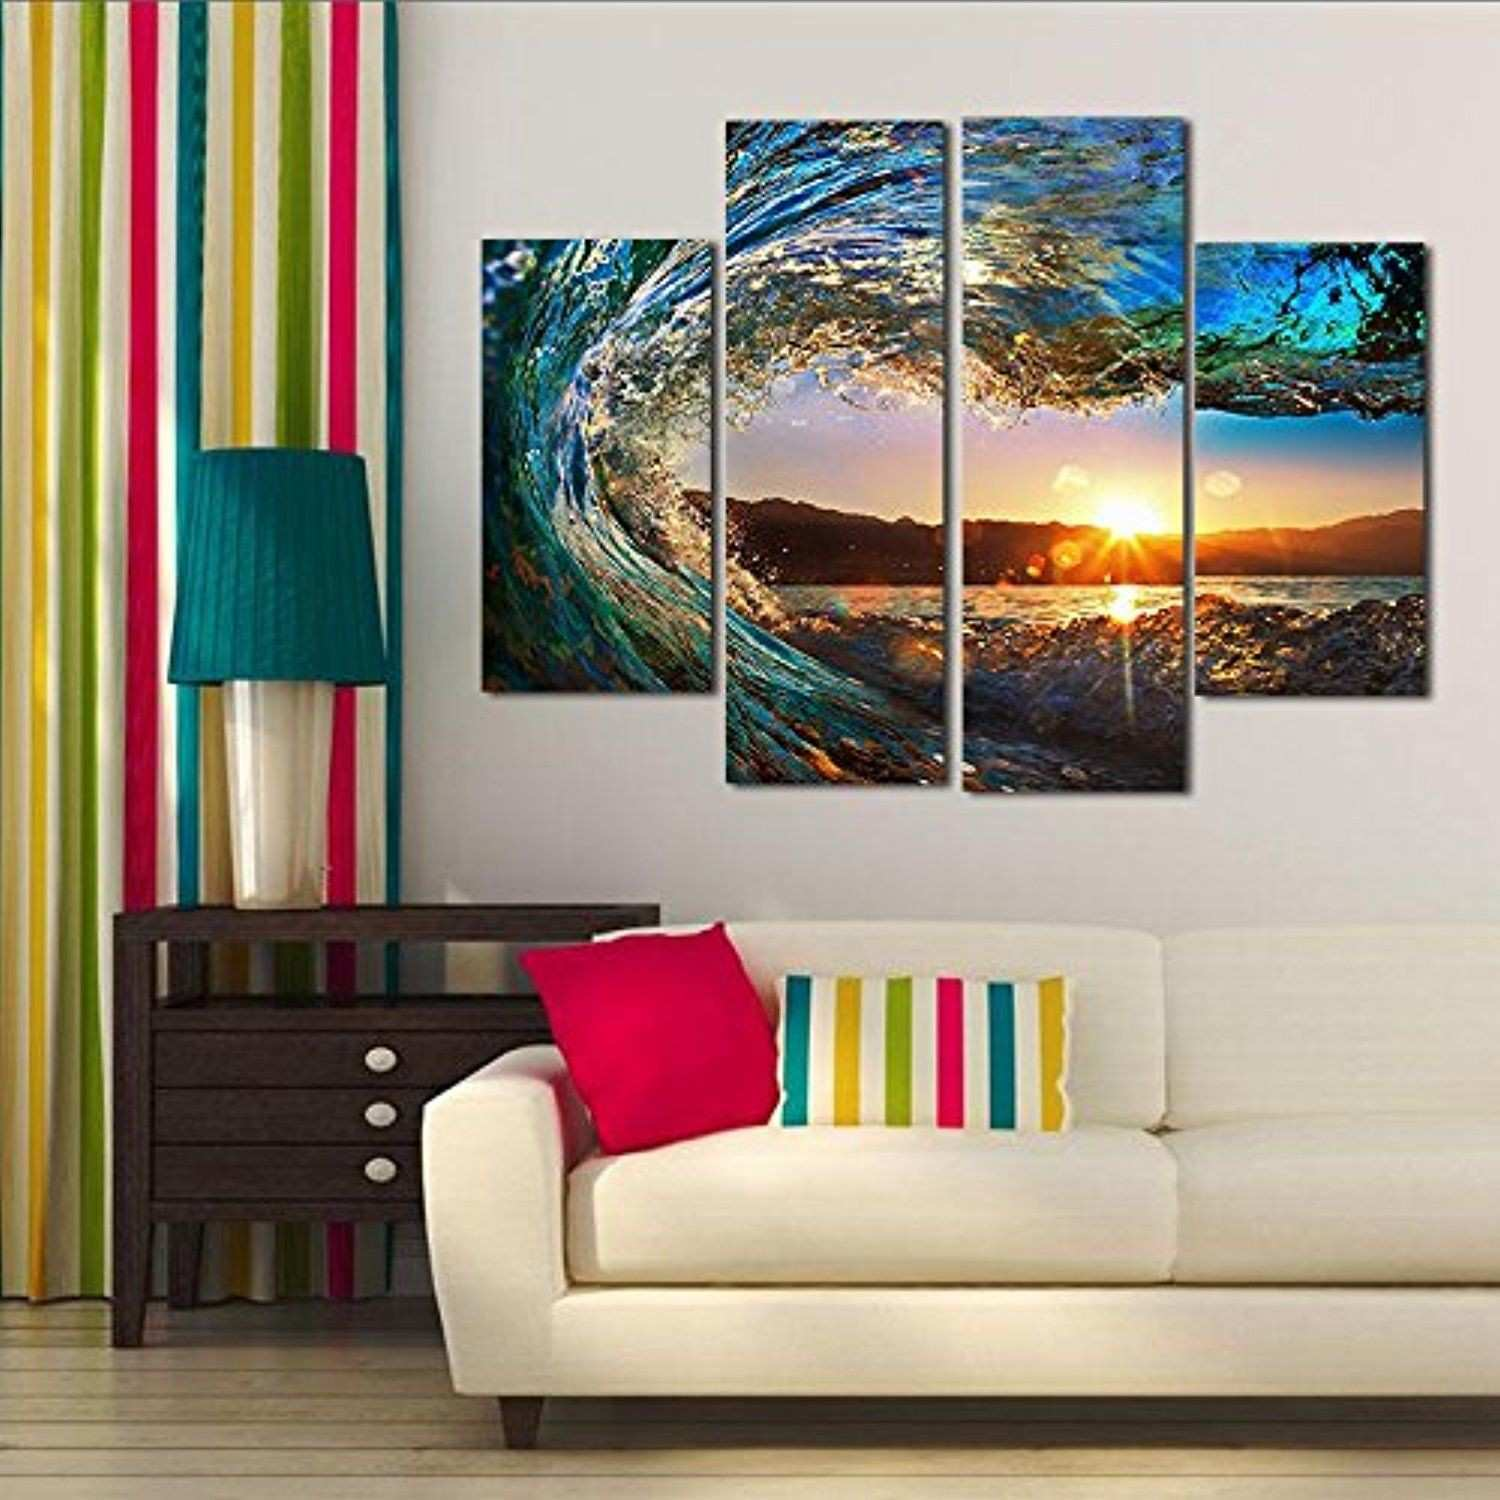 WALLORY 4 Panels Wall Art Oil Painting without Frame Abstract